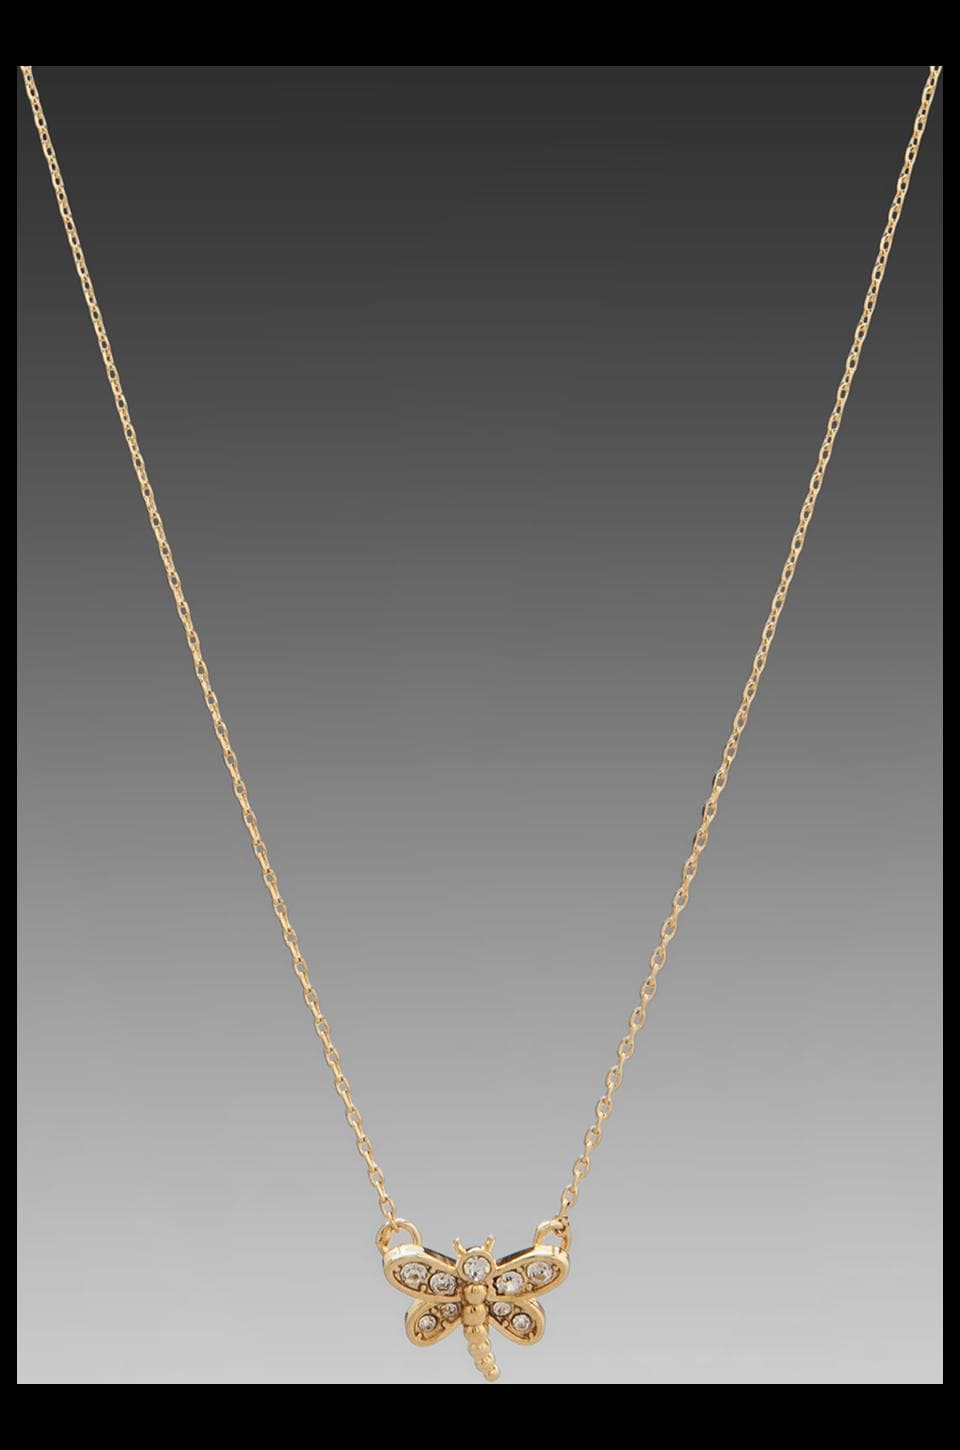 Juicy Couture Pave Dragonfly Necklace in Gold